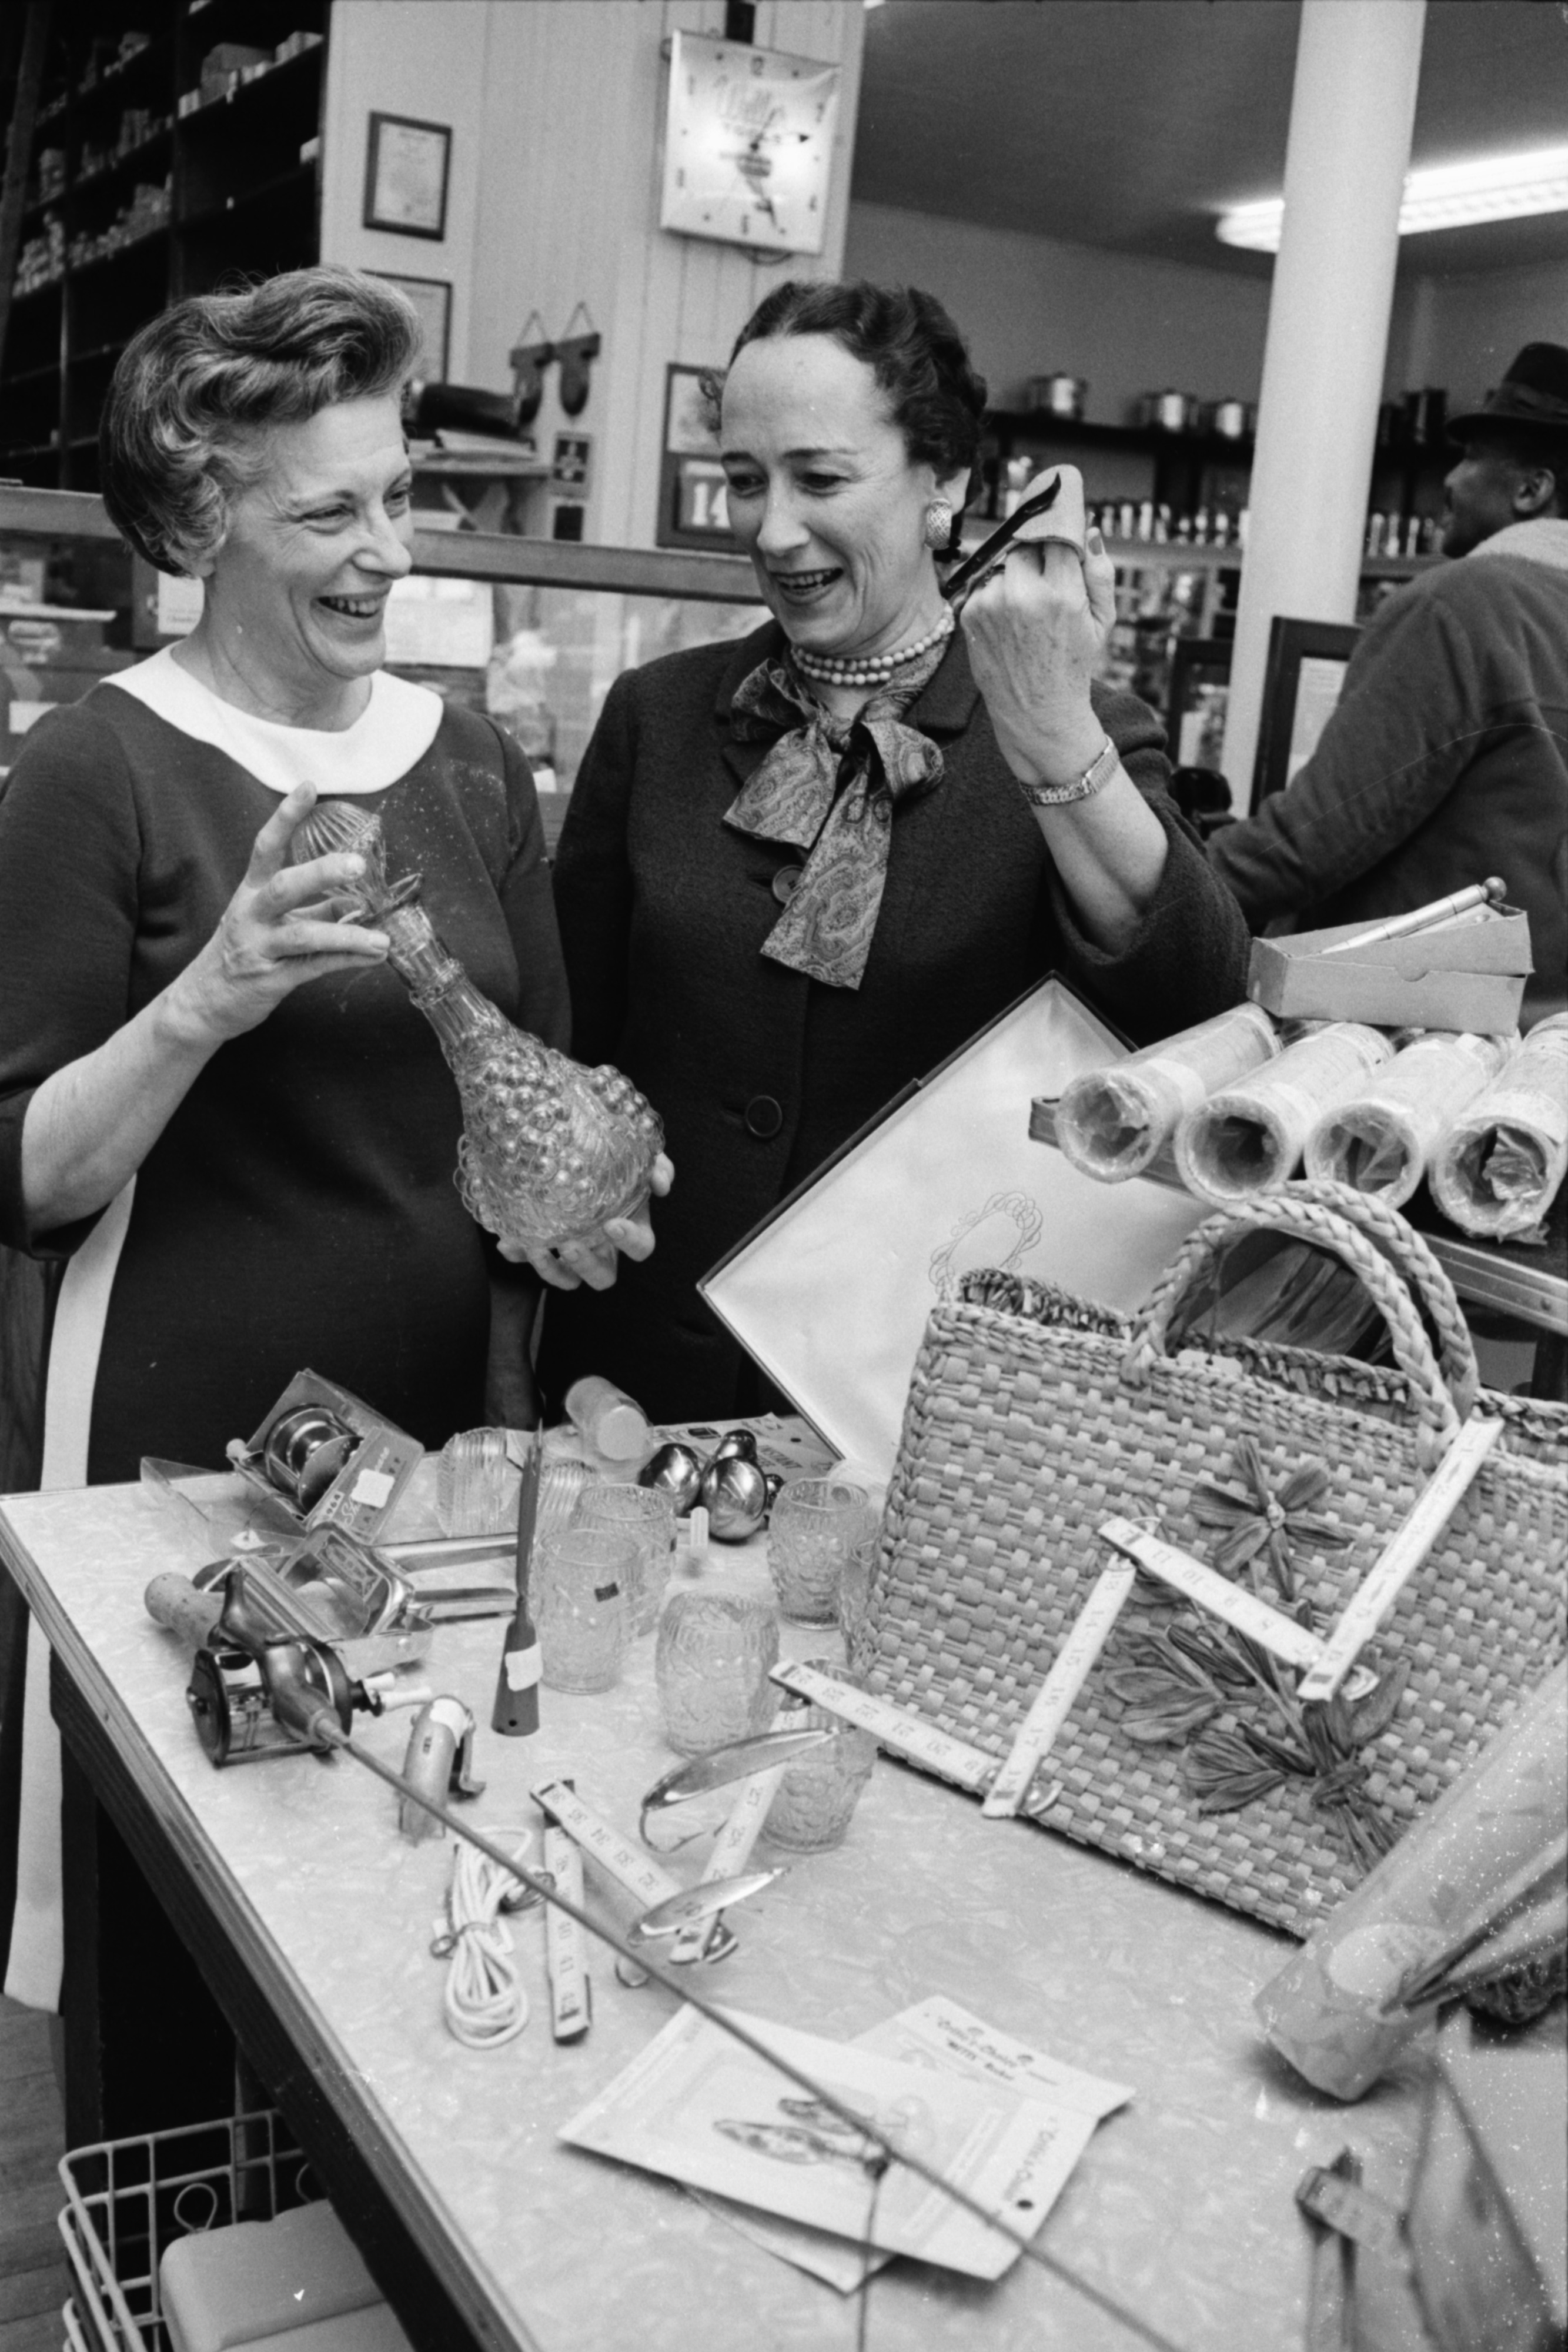 Margaret Cray & Mrs. Clarence E Crook Inside Fischer's Hardware, February 1969 image